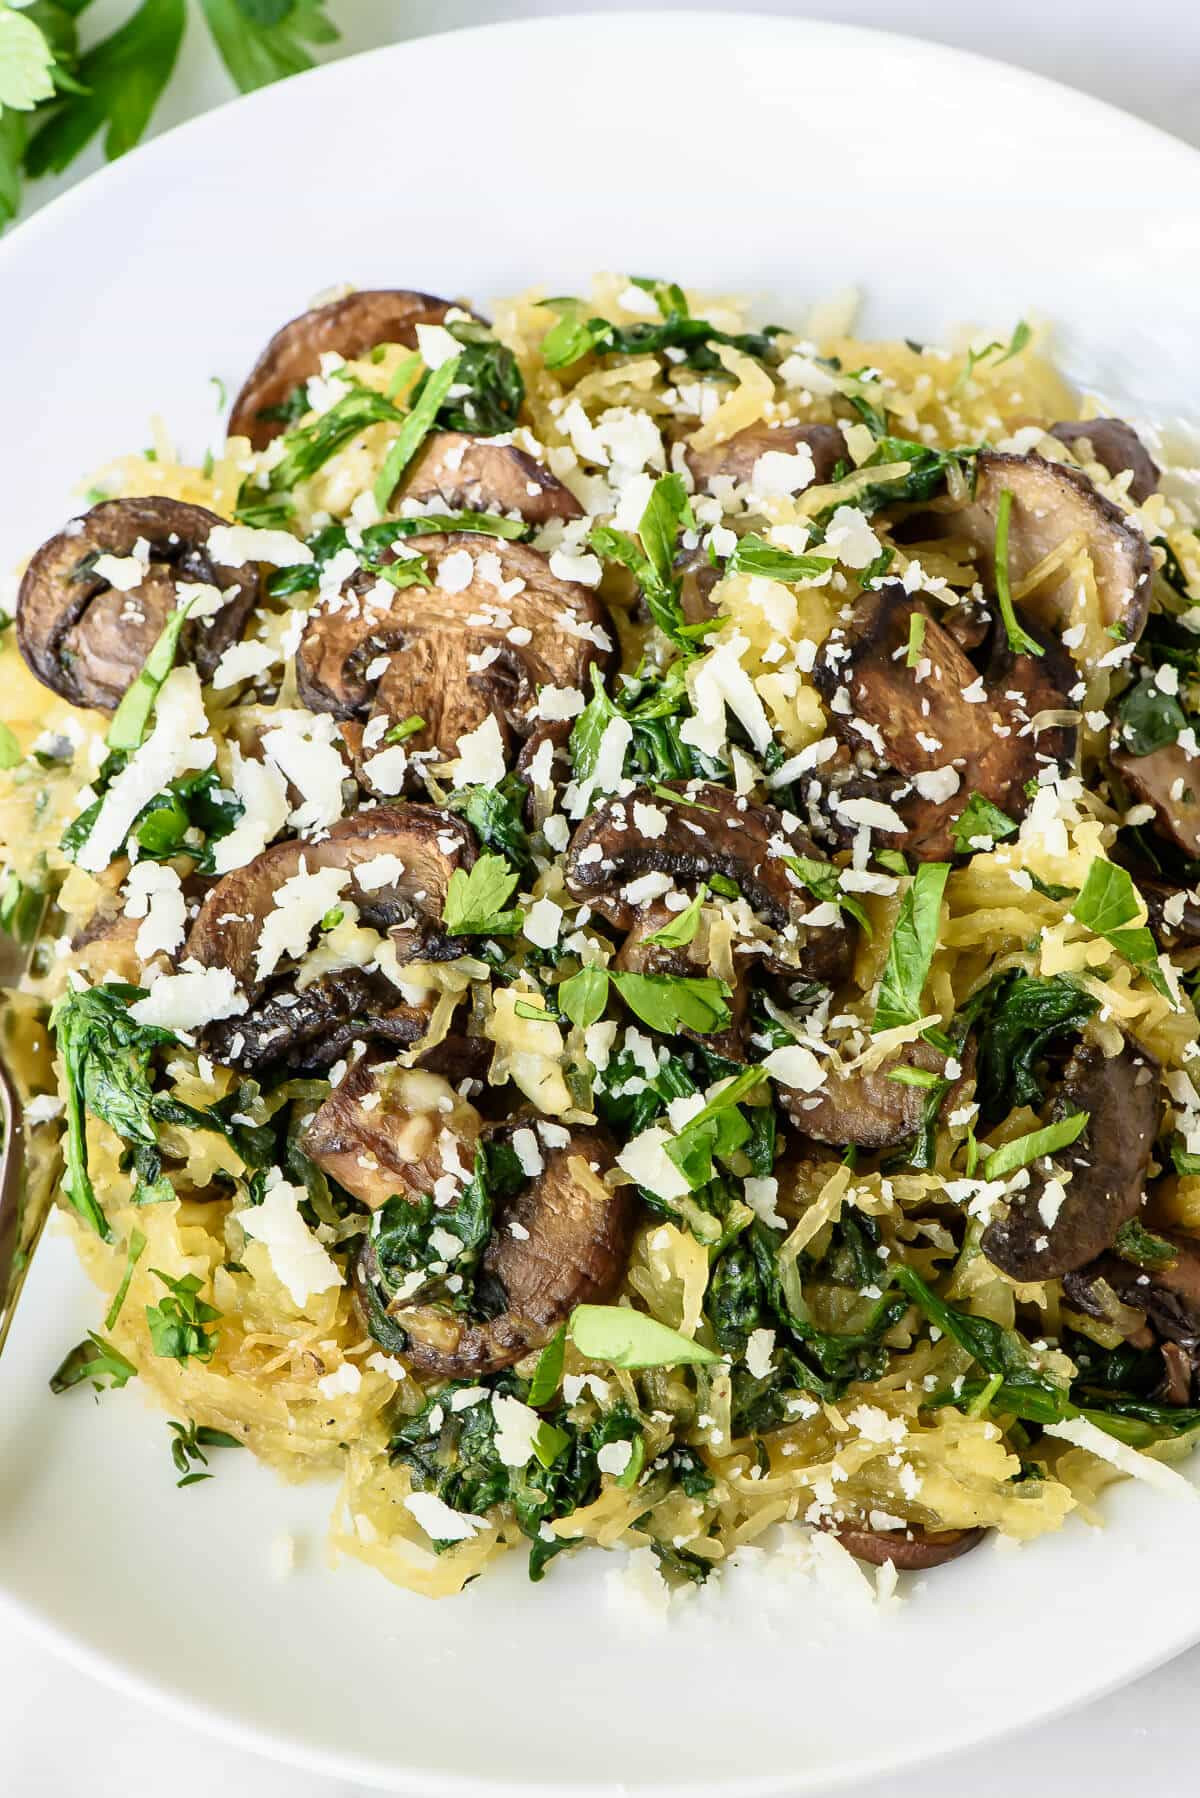 Vegan Spaghetti Squash Recipes  Roasted Spaghetti Squash with Parmesan and Mushrooms